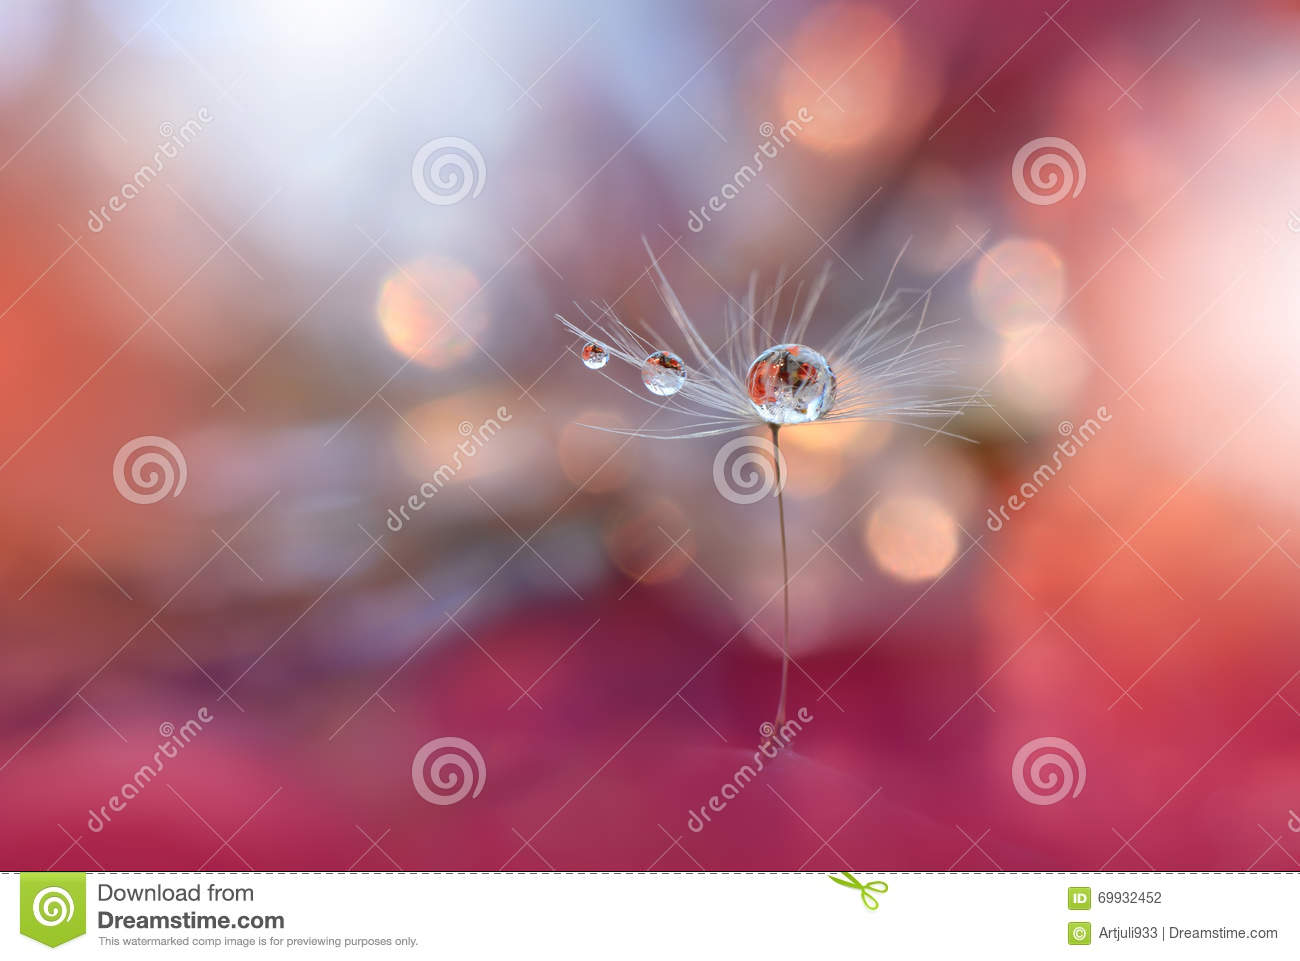 Beautiful Nature.Abstract Macro Photography.Amazing Colorful Wallpaper.Orange and Yellow Colors.Art,creative,design.